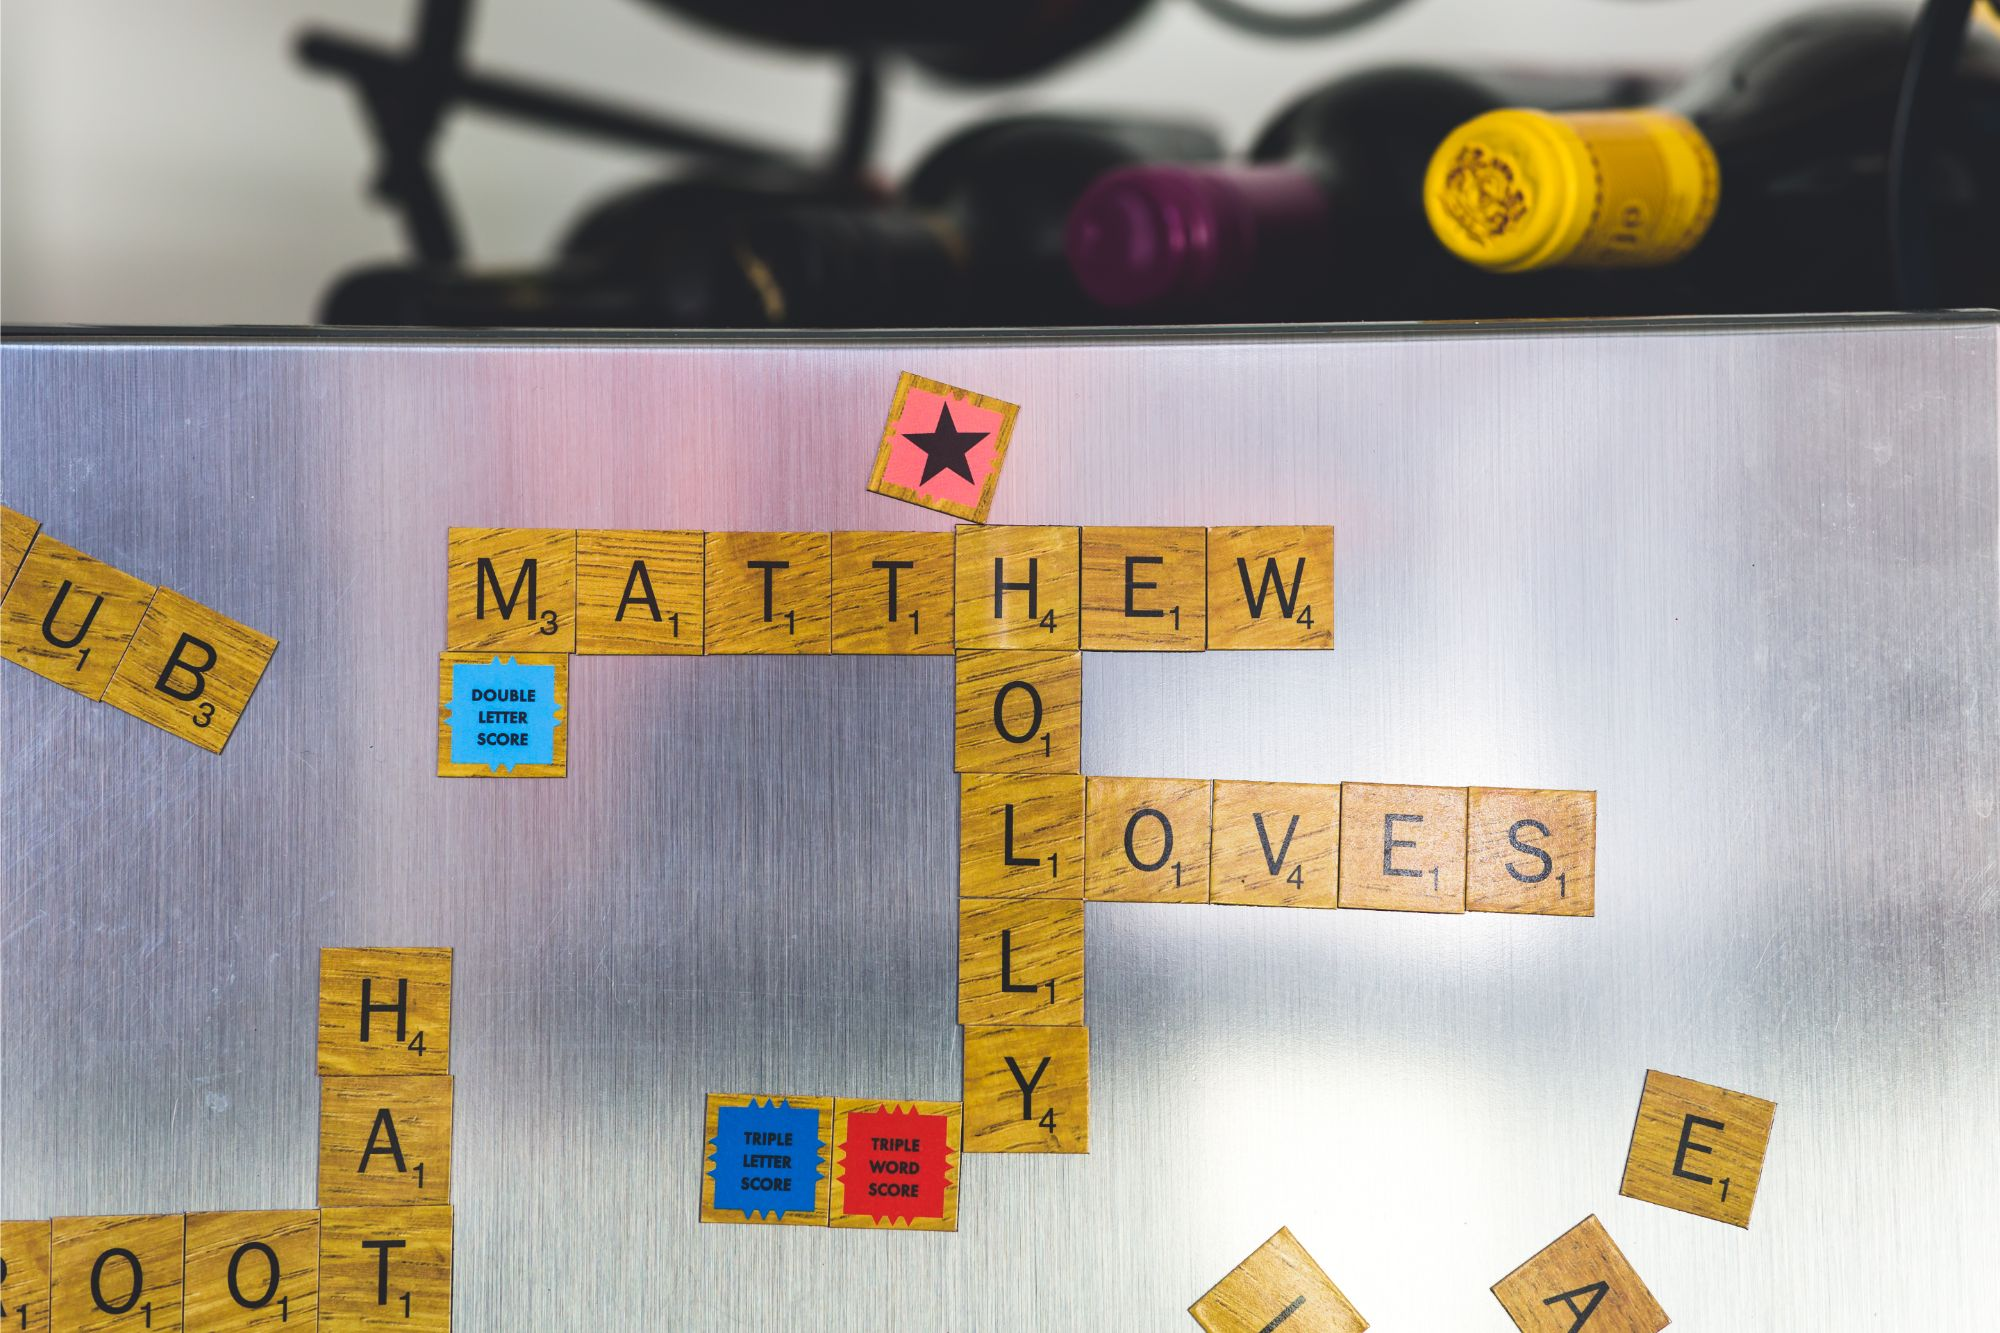 Bride & Groom names made out of Scrabble pieces on wedding day